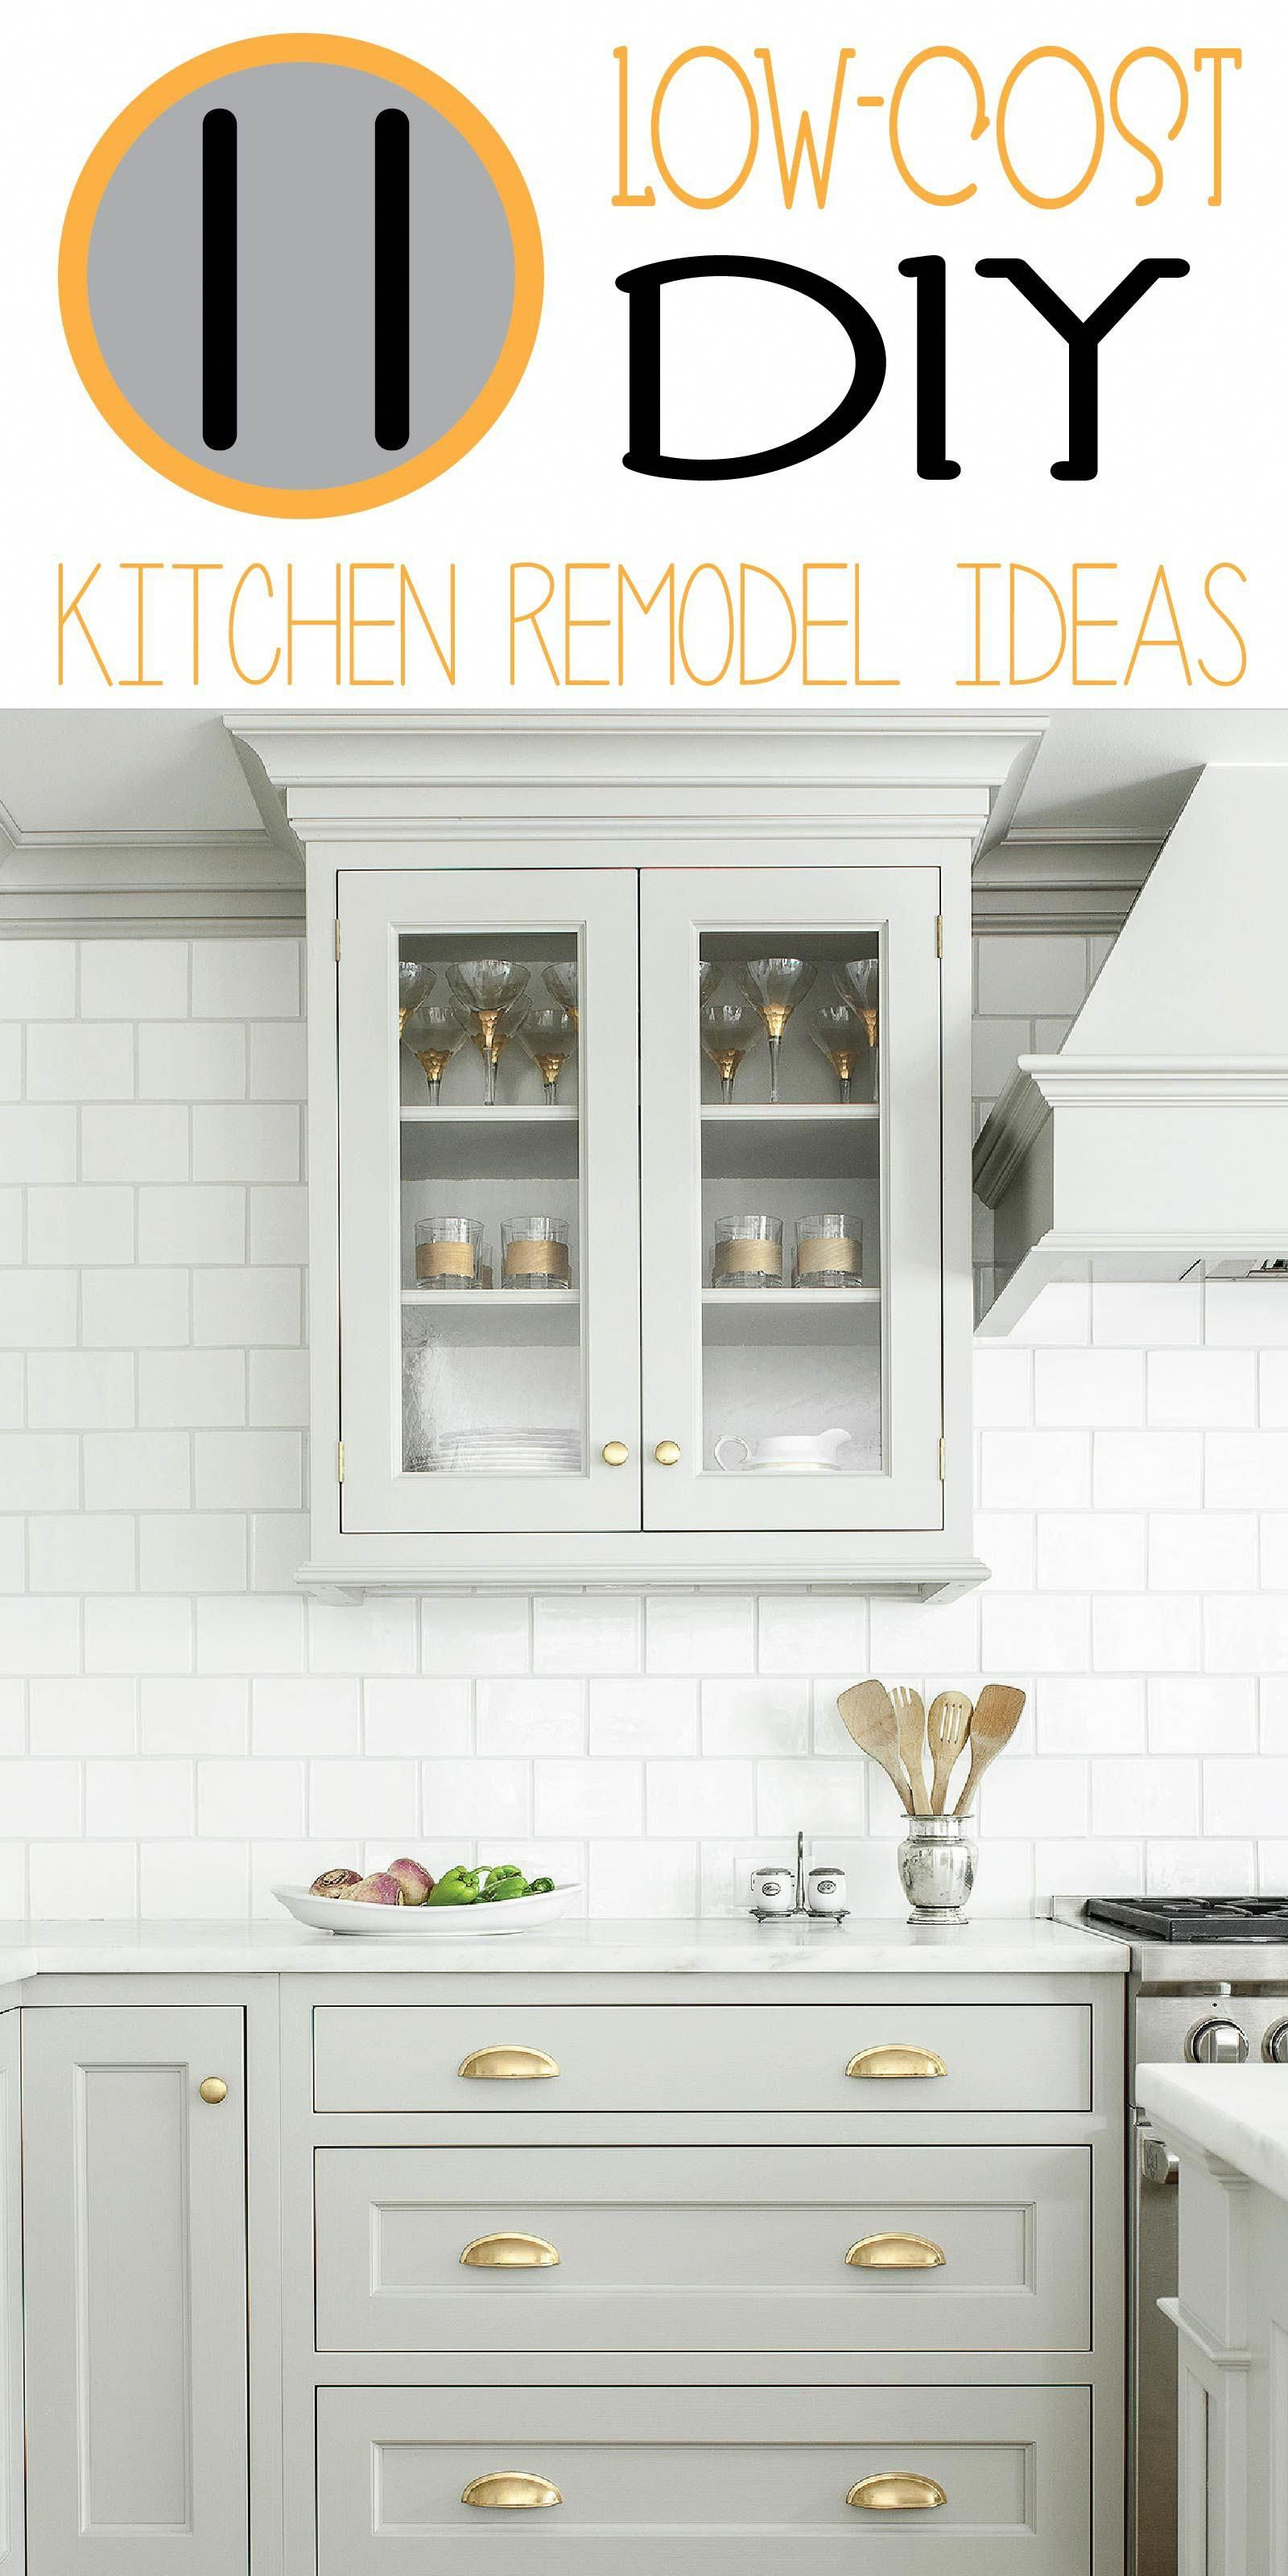 Pop out kitchen window  check out these inexpensive diy kitchen remodel ideas that will